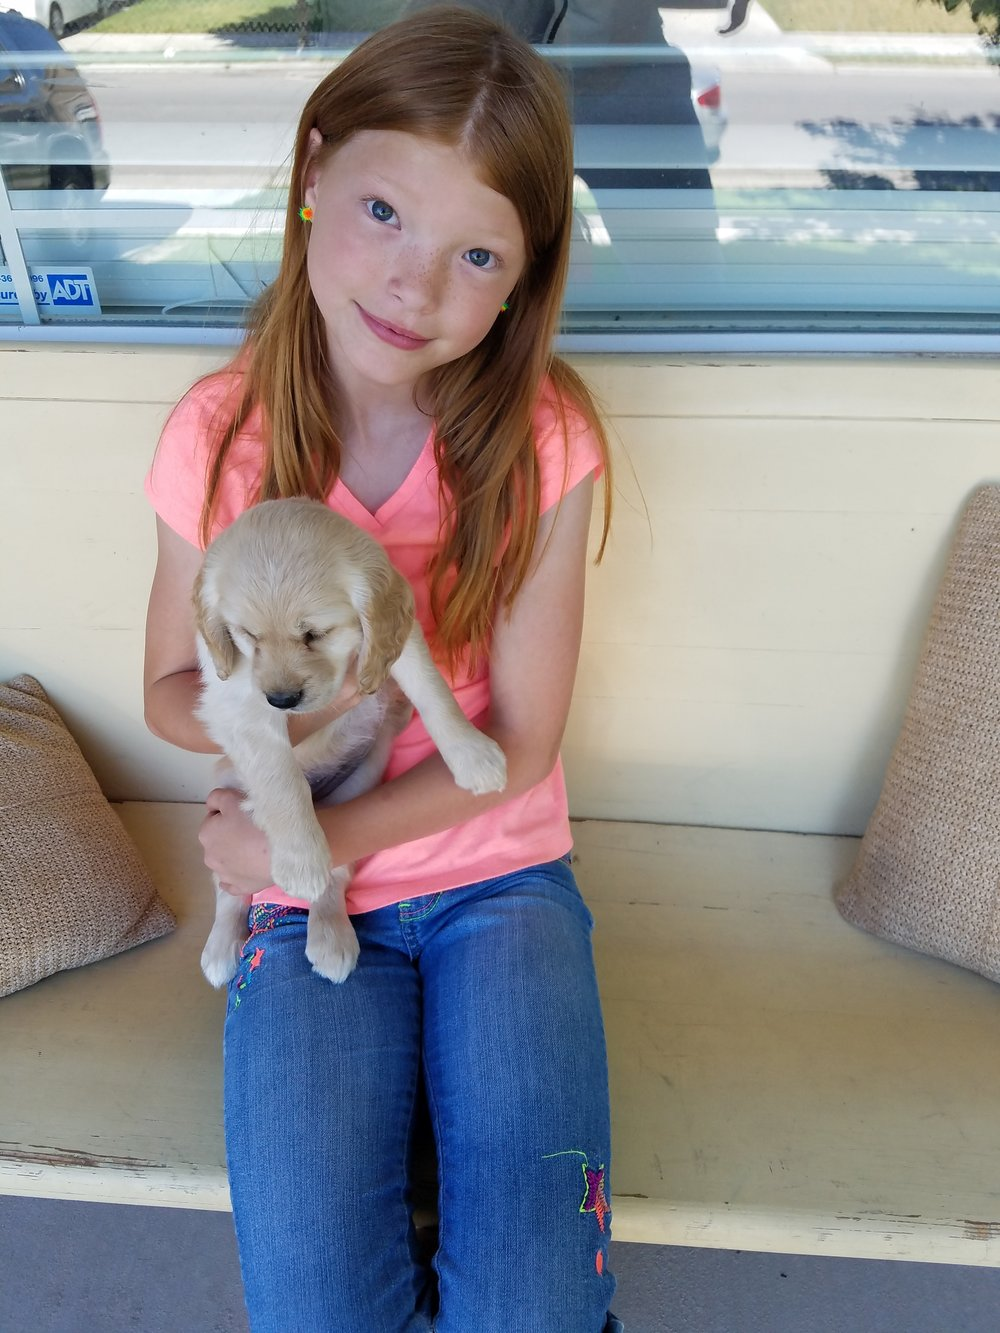 My 10-year-old daughter and her puppy Brie